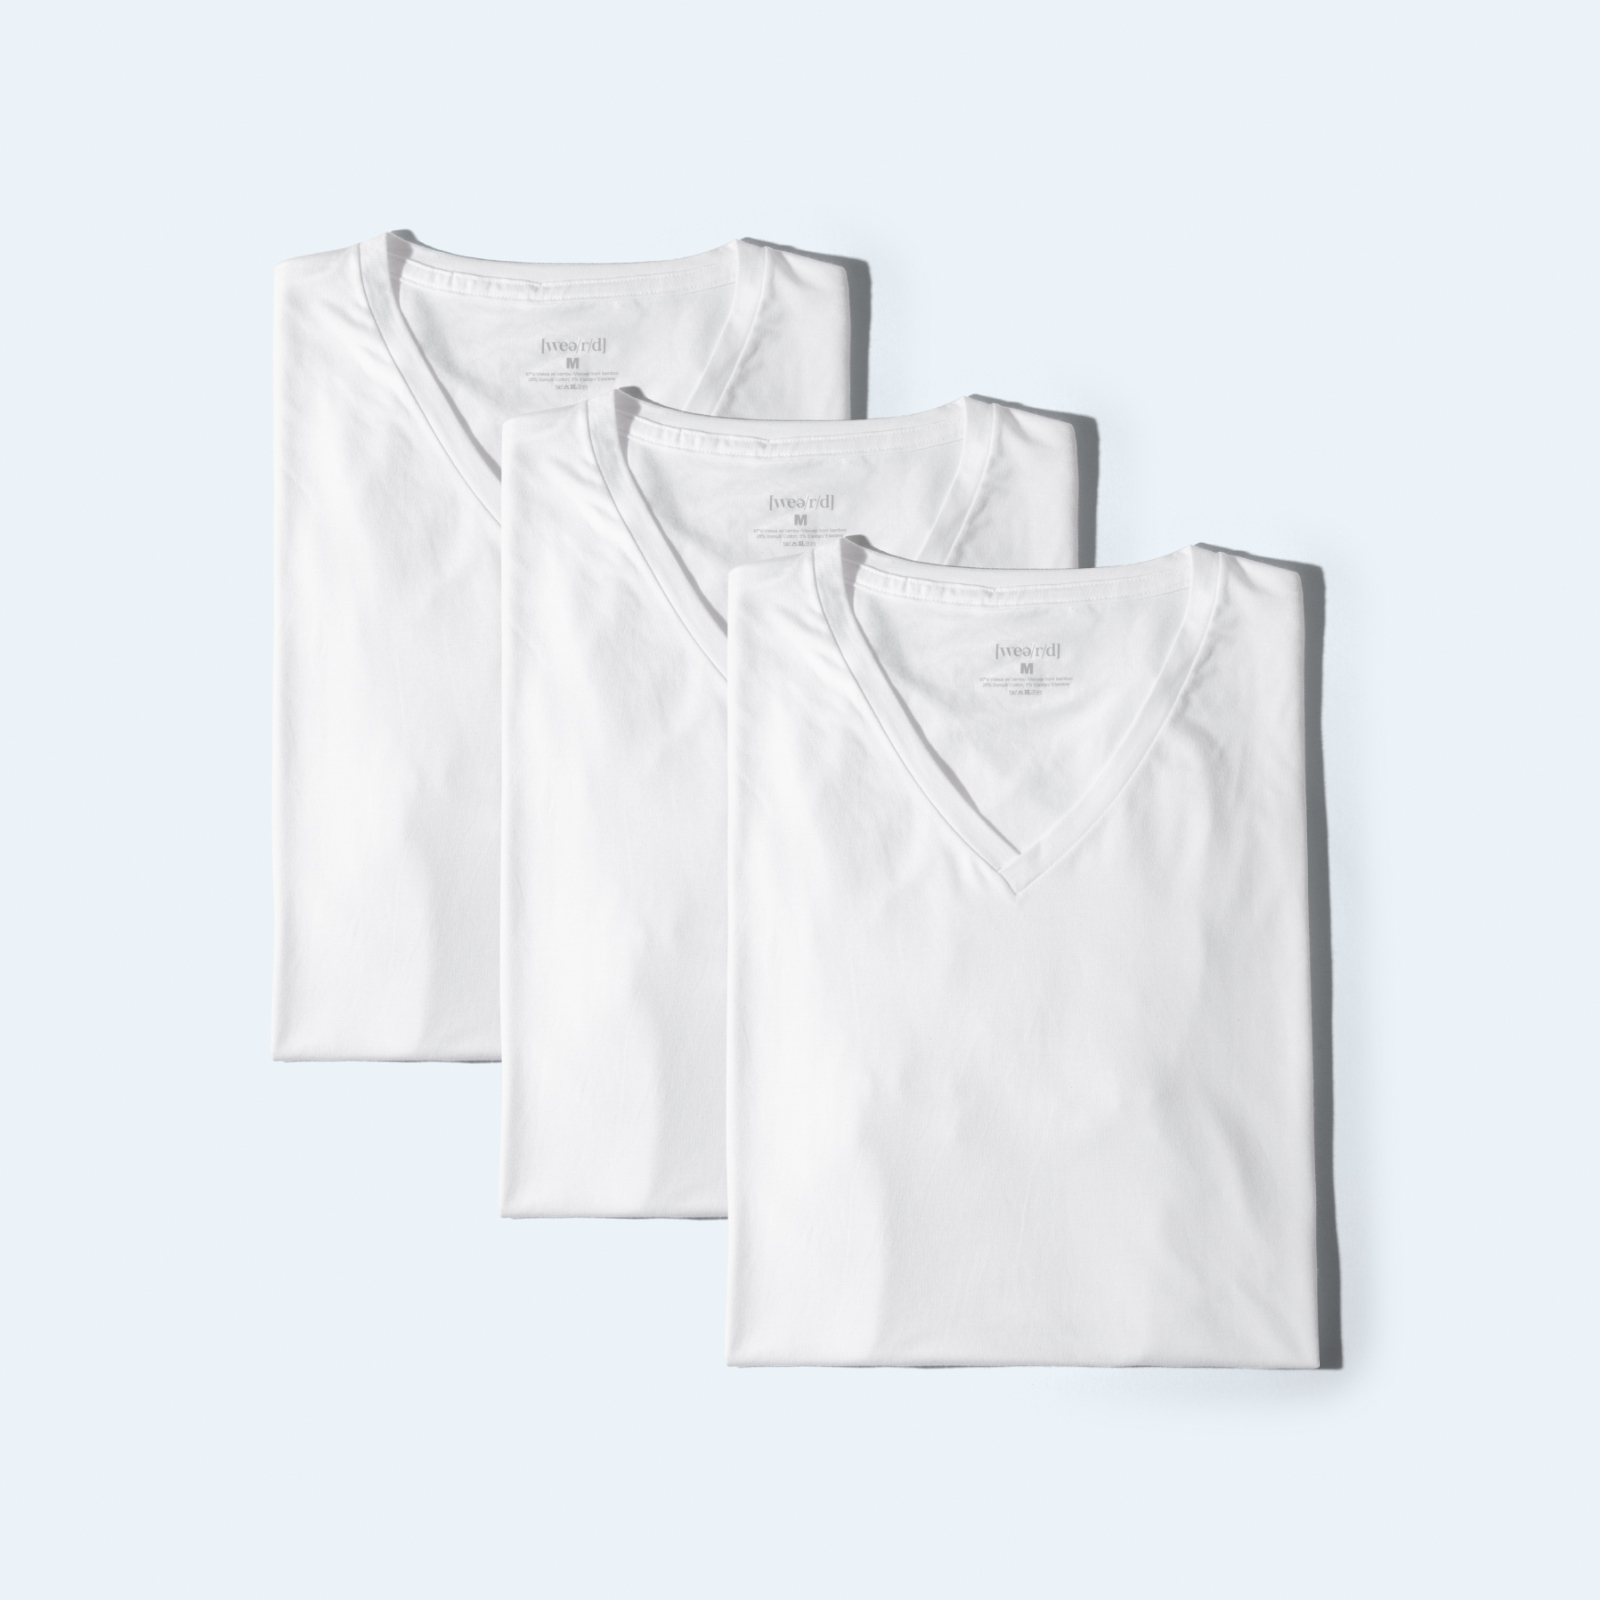 Awesome T-shirt [3 pcs - V-neck] - white